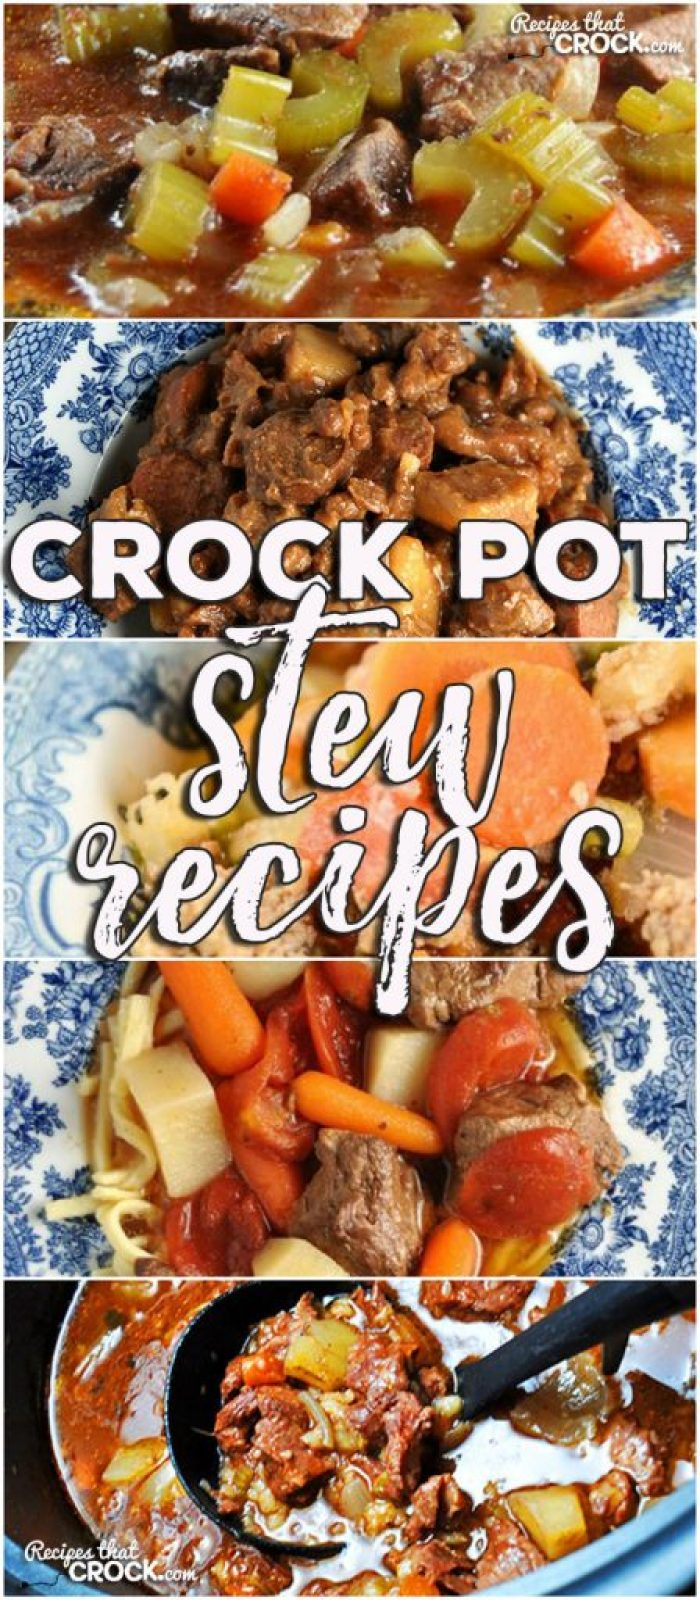 This week for our Friday Favorites we have some delicious Crock Pot Stew Recipes for you, including Crock Pot Beef Stew, Crock Pot Chuck Wagon Stew, Crock Pot Italian Hobo Stew, Crock Pot Savory Beef Stew and Easy Crock Pot Beef Stew!